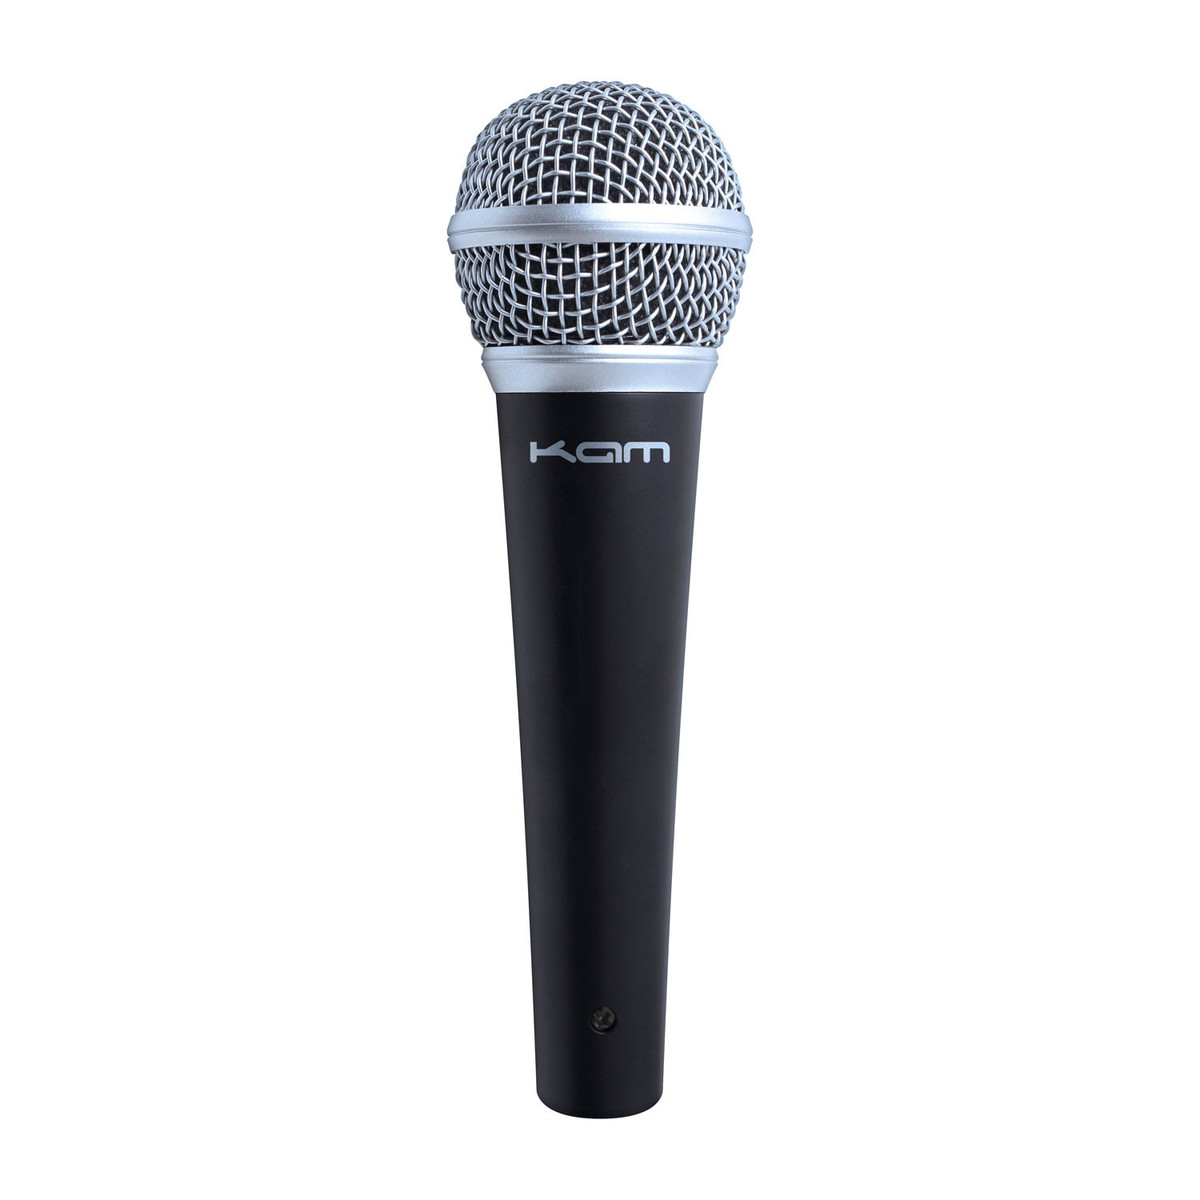 DISC Kam KDM580 V2 Dynamic Microphone | Gear4music